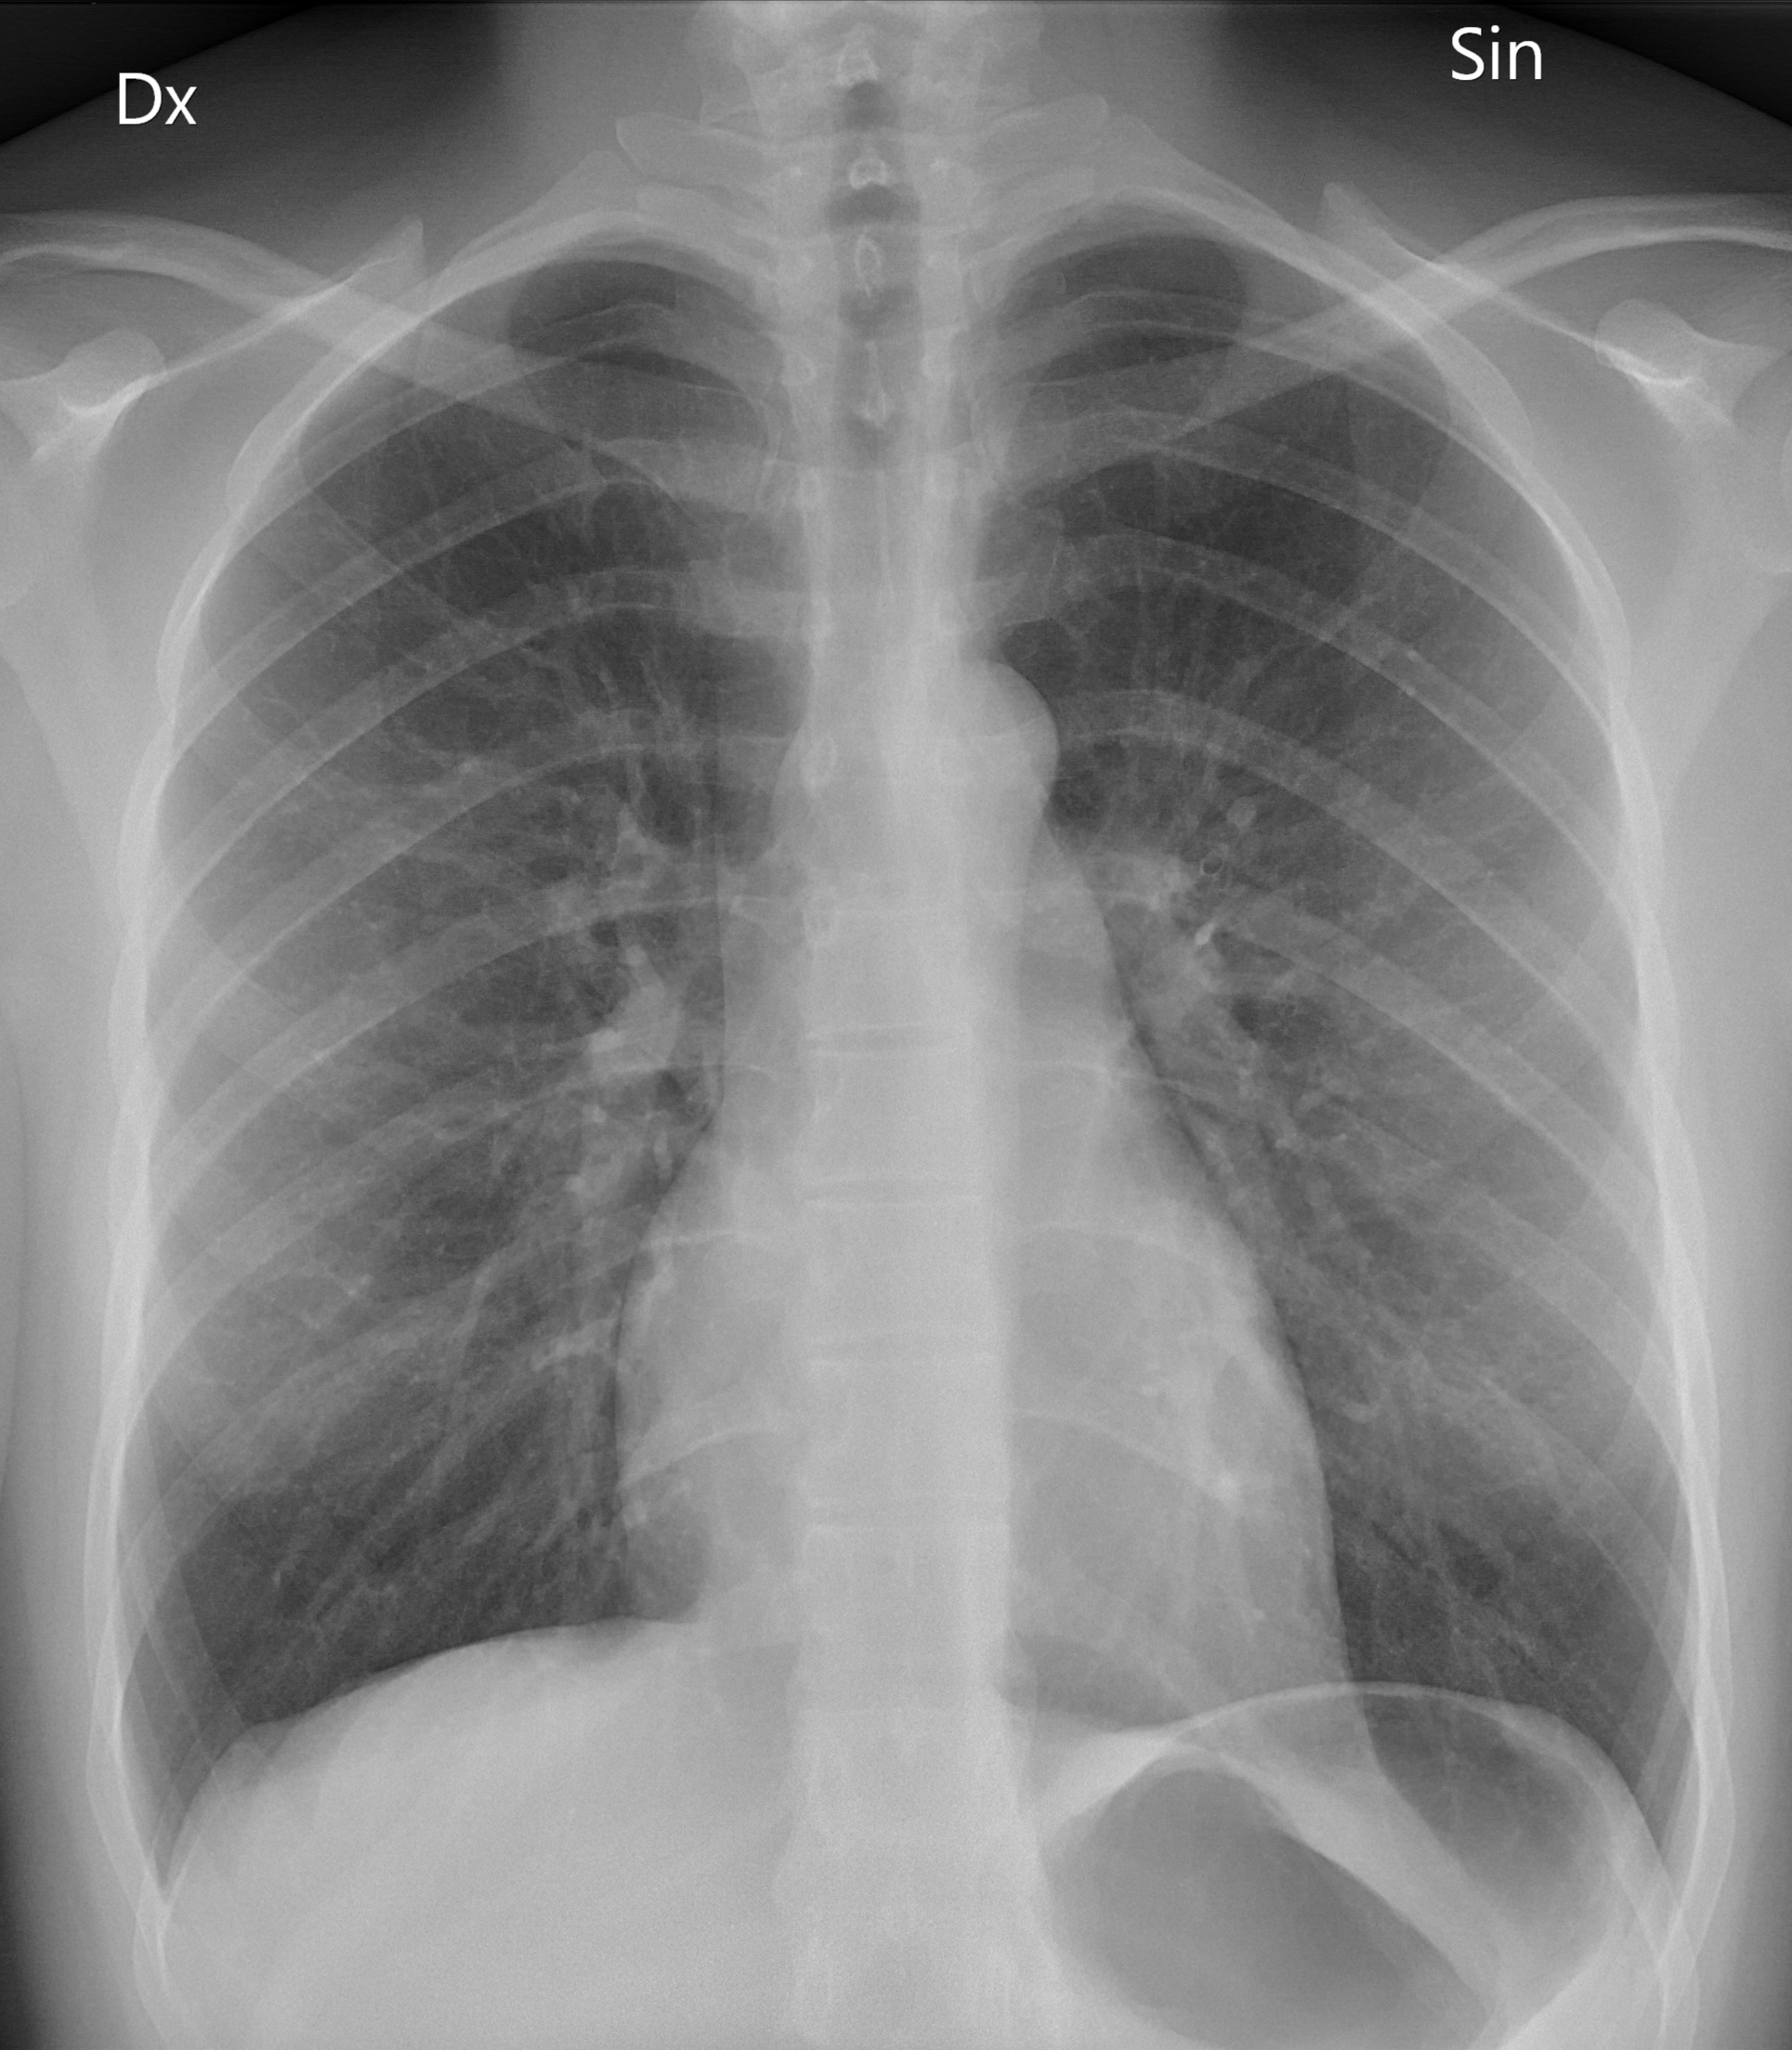 Normal Chest Xray 2